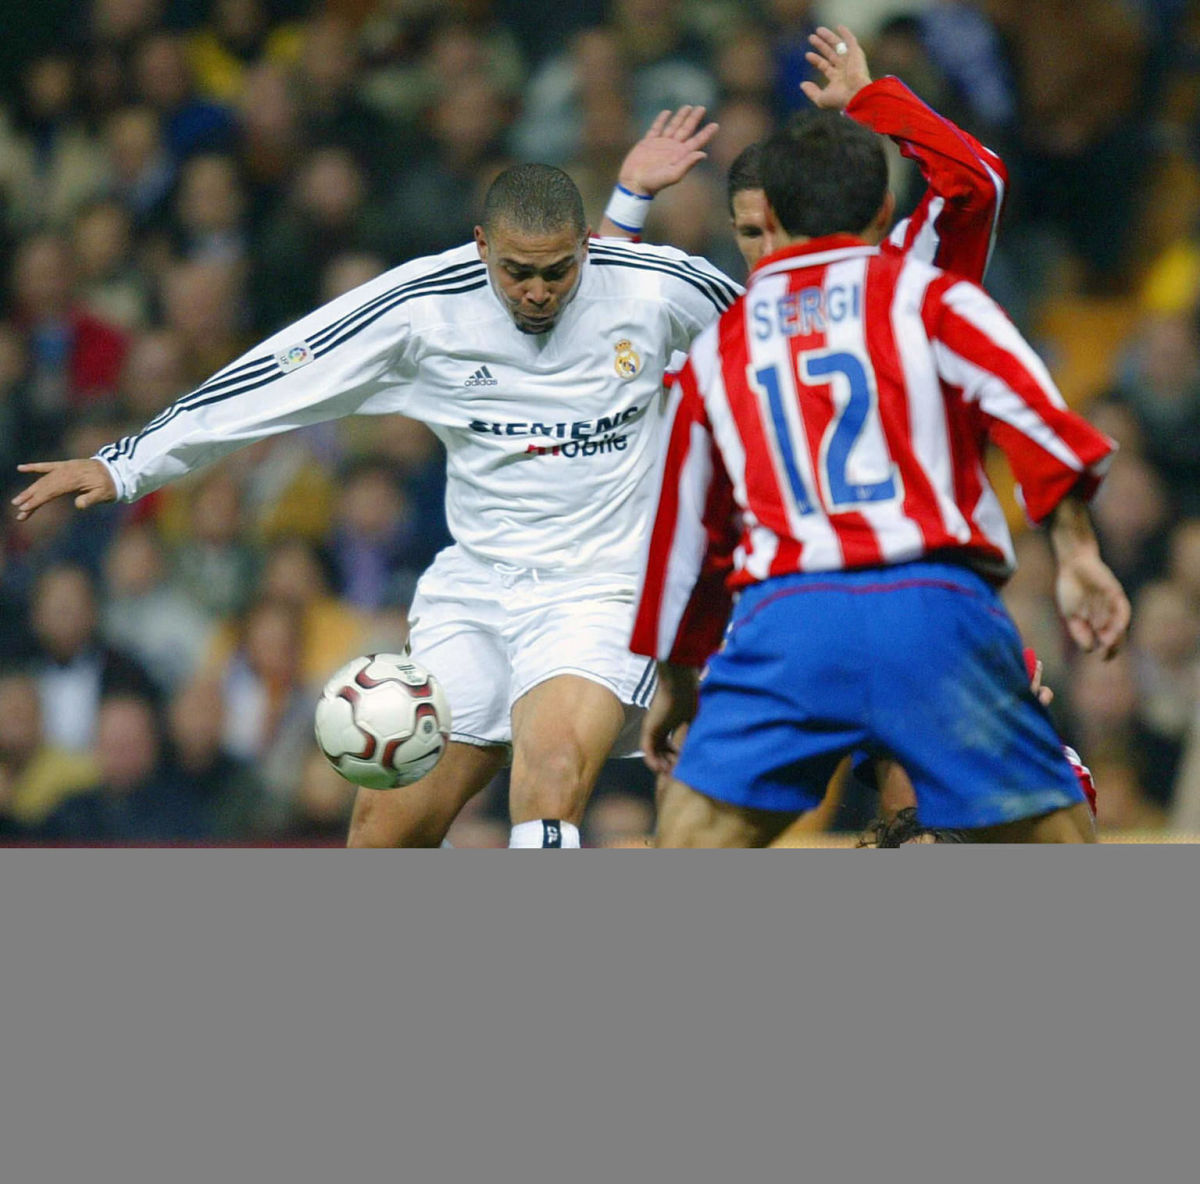 real-madrid-s-brazilian-player-ronaldo-5d4008f06f2ef4a9c0000001.jpg